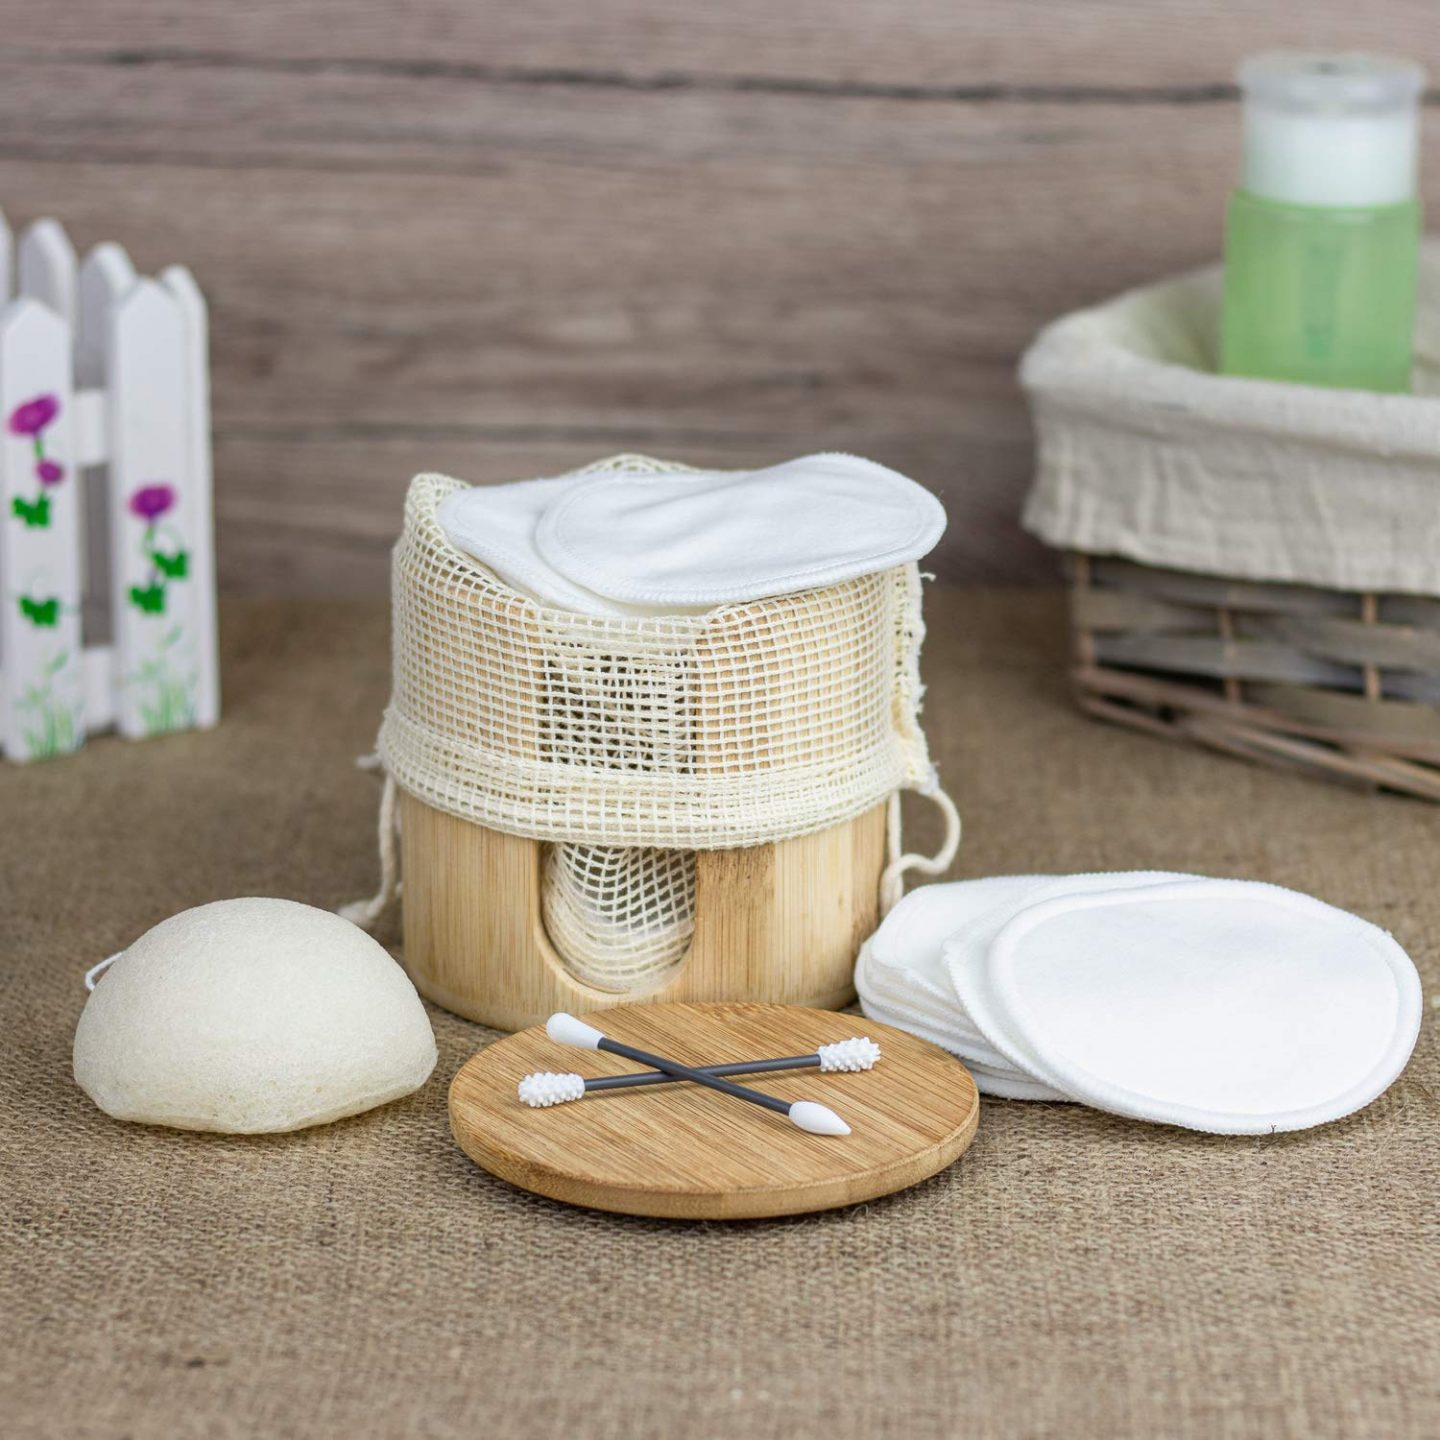 Adbra reusable cotton pads in a wooden storage jar